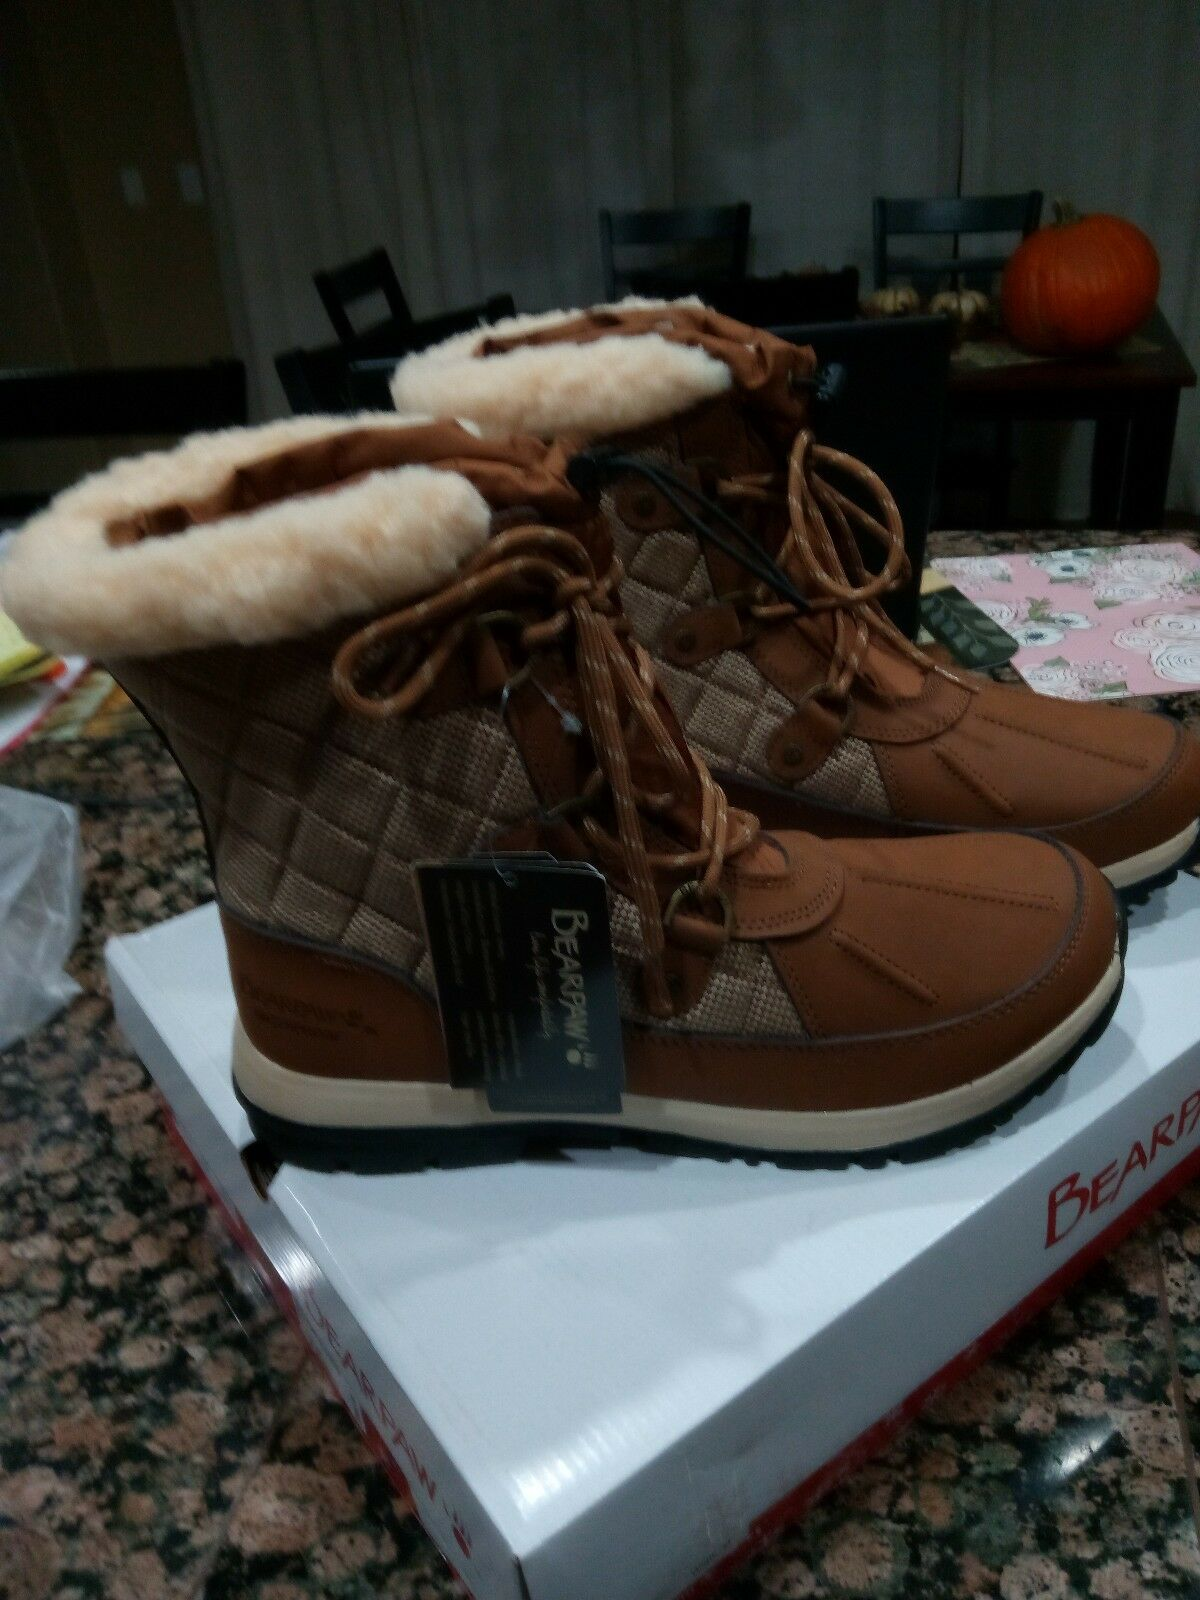 BearPaw Bethaney Womens Size 10 Brand New Boots.? Tan Color.? Medium width.